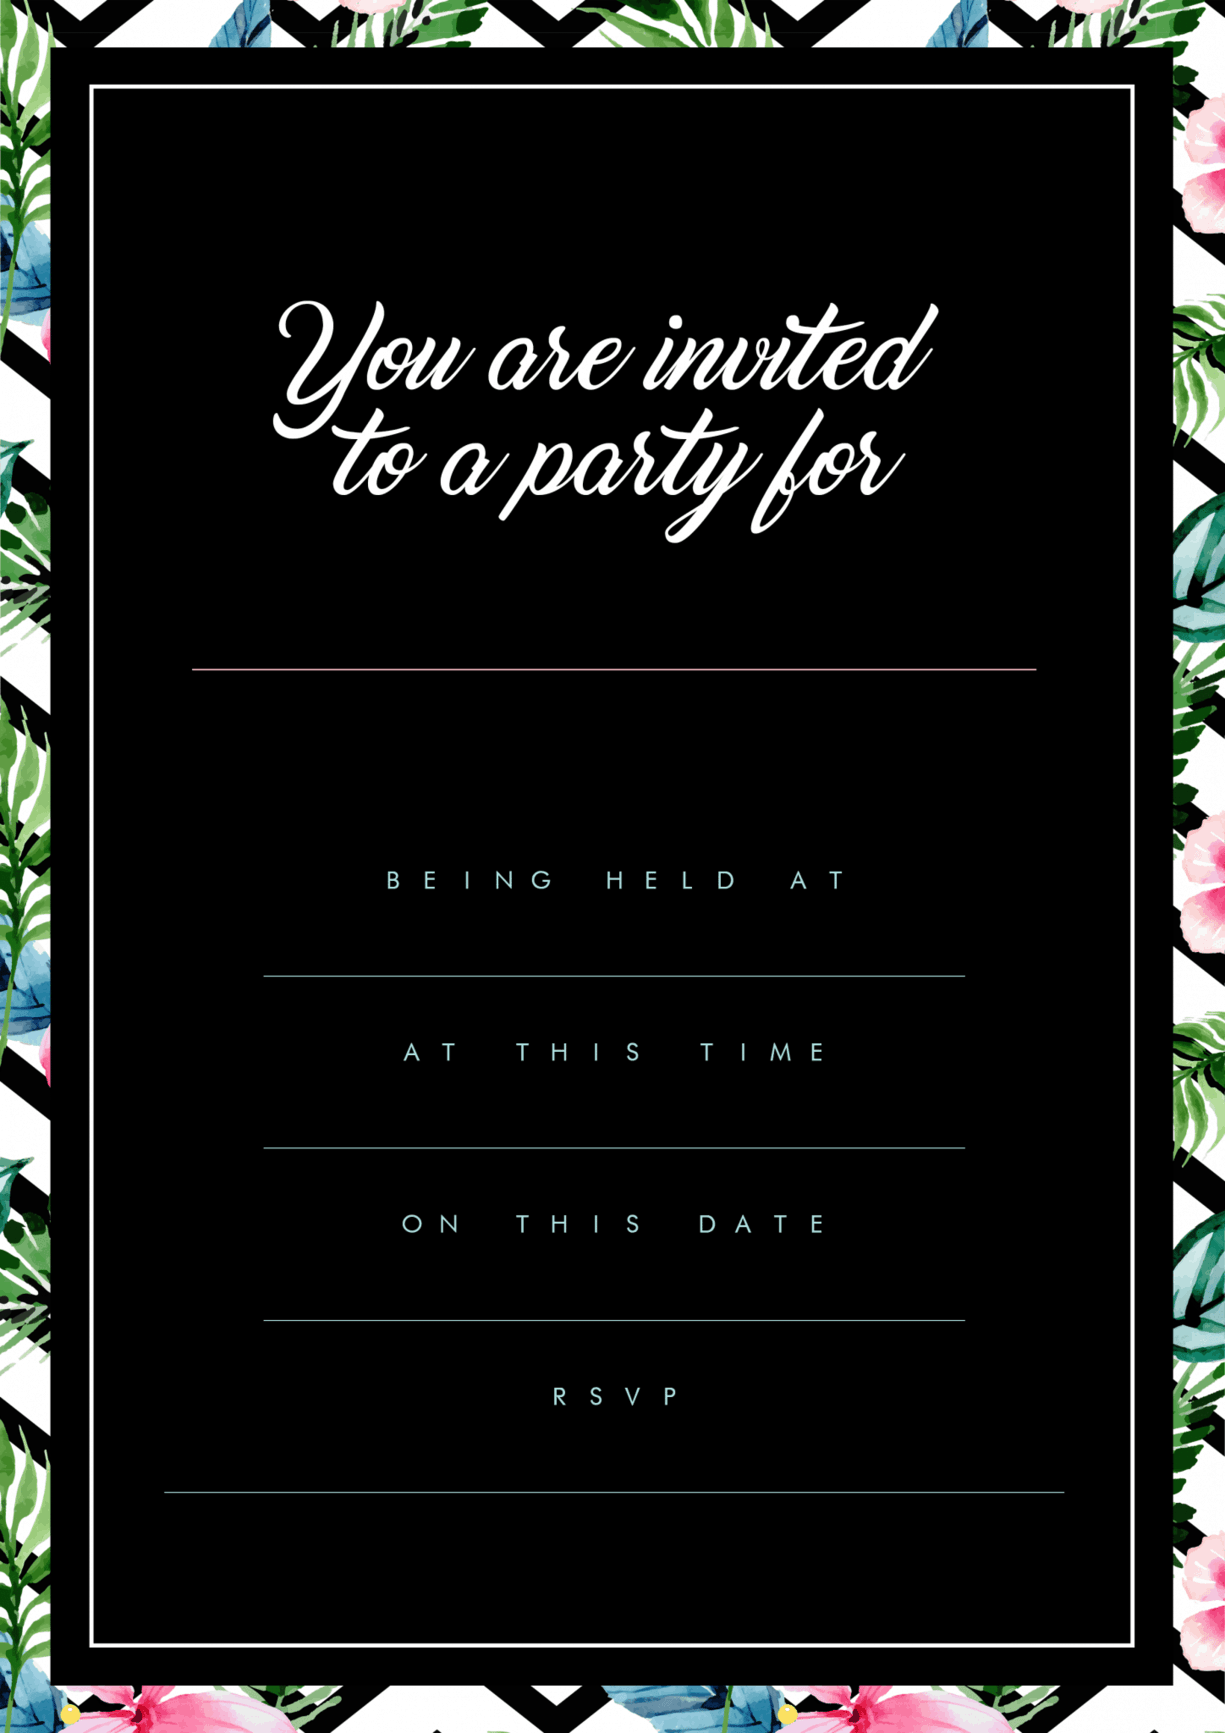 Stylish Modern Party Invite Black Background Floral